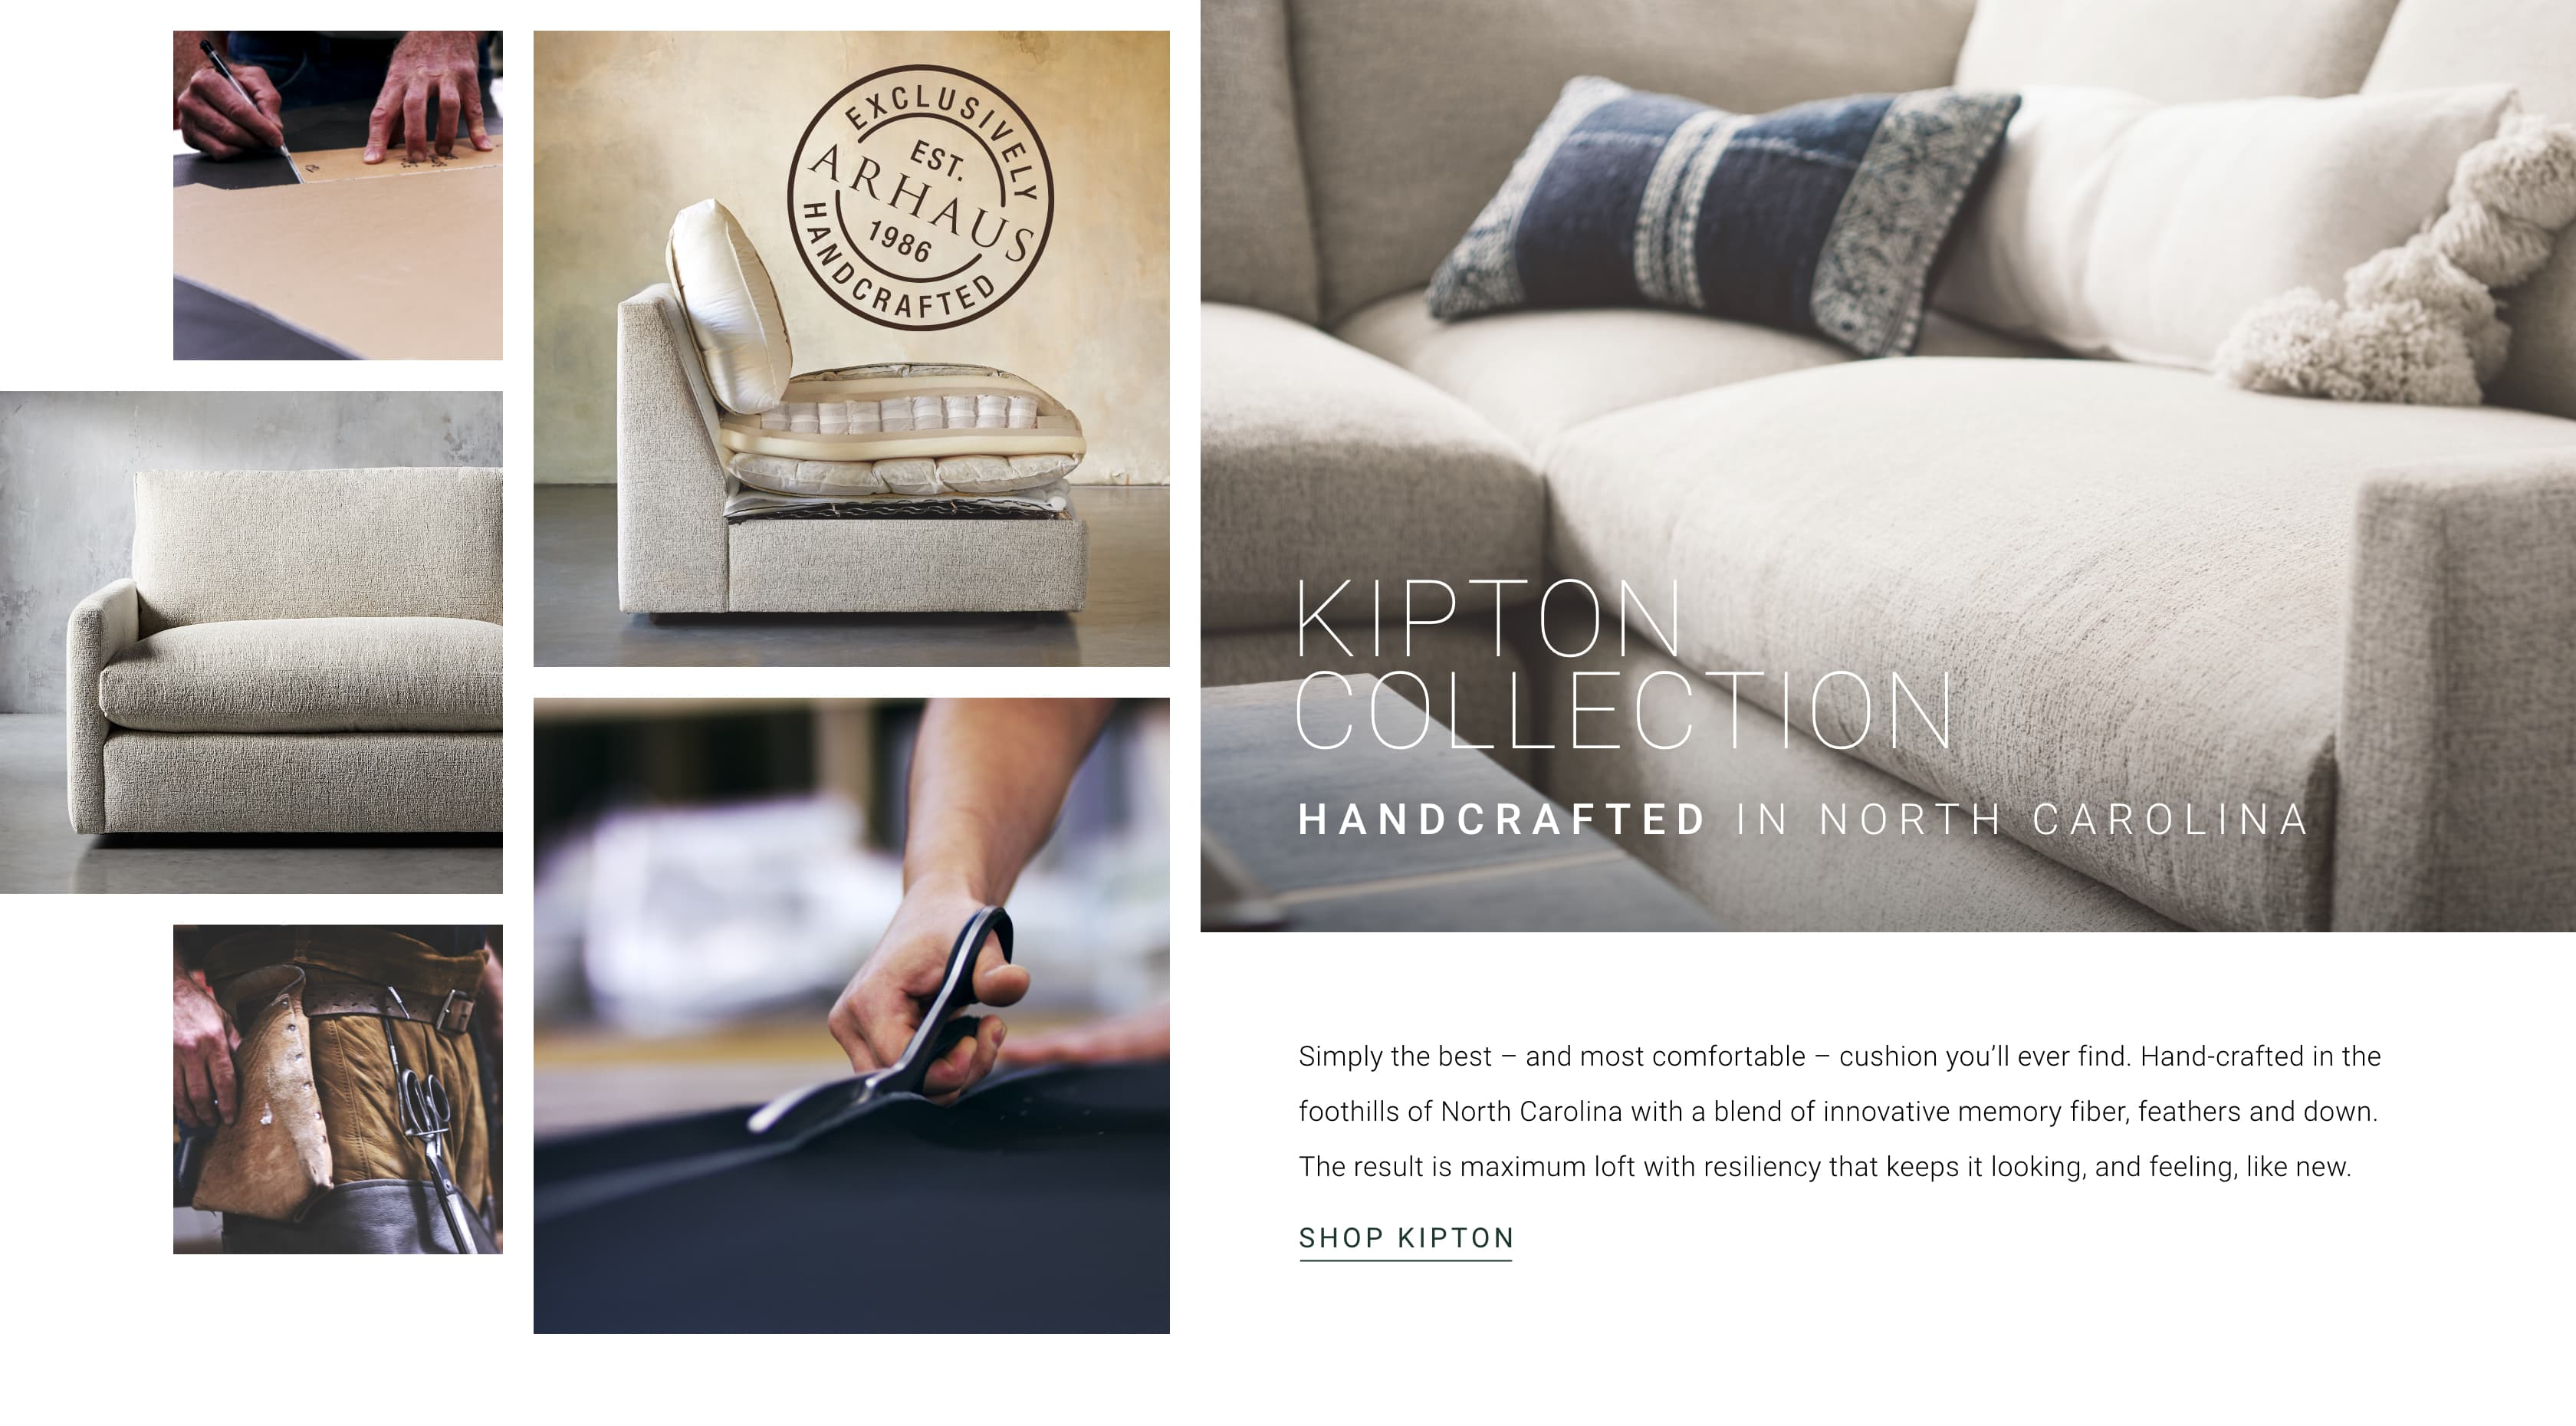 The Kipton Collection, Handcrafted in North Carolina